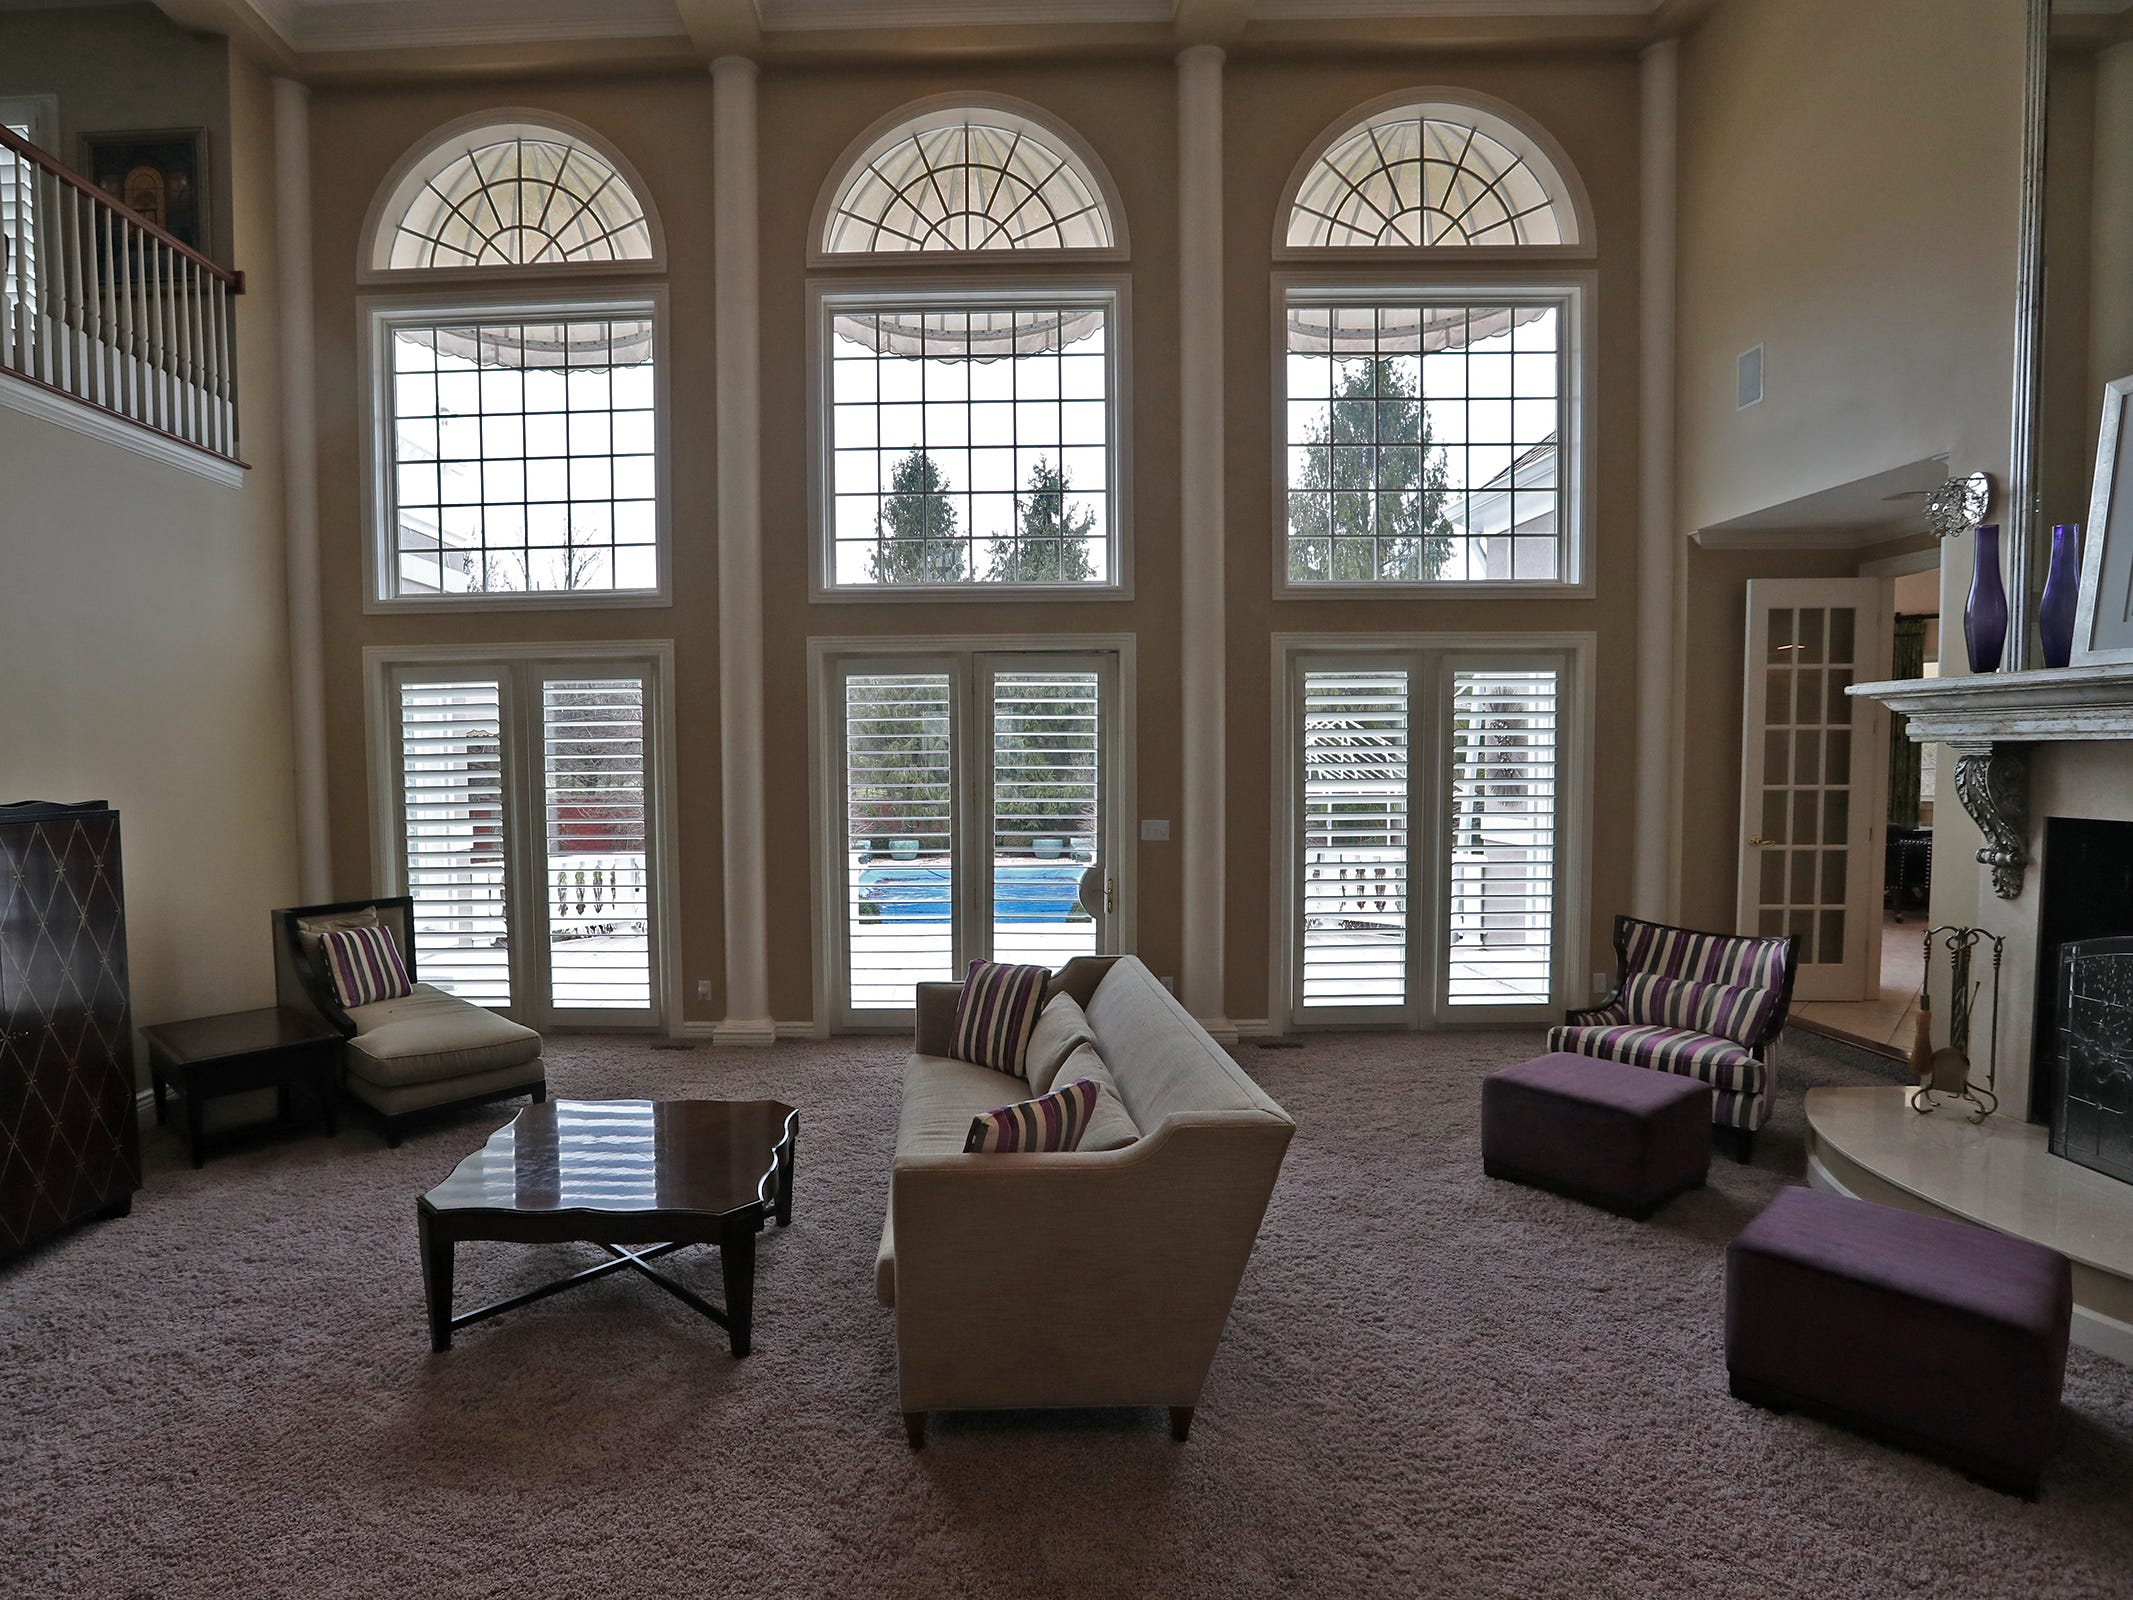 This is the two-story living area in the home at 1270 Laurelwood Ct. in Carmel, Friday, Dec. 28, 2018.